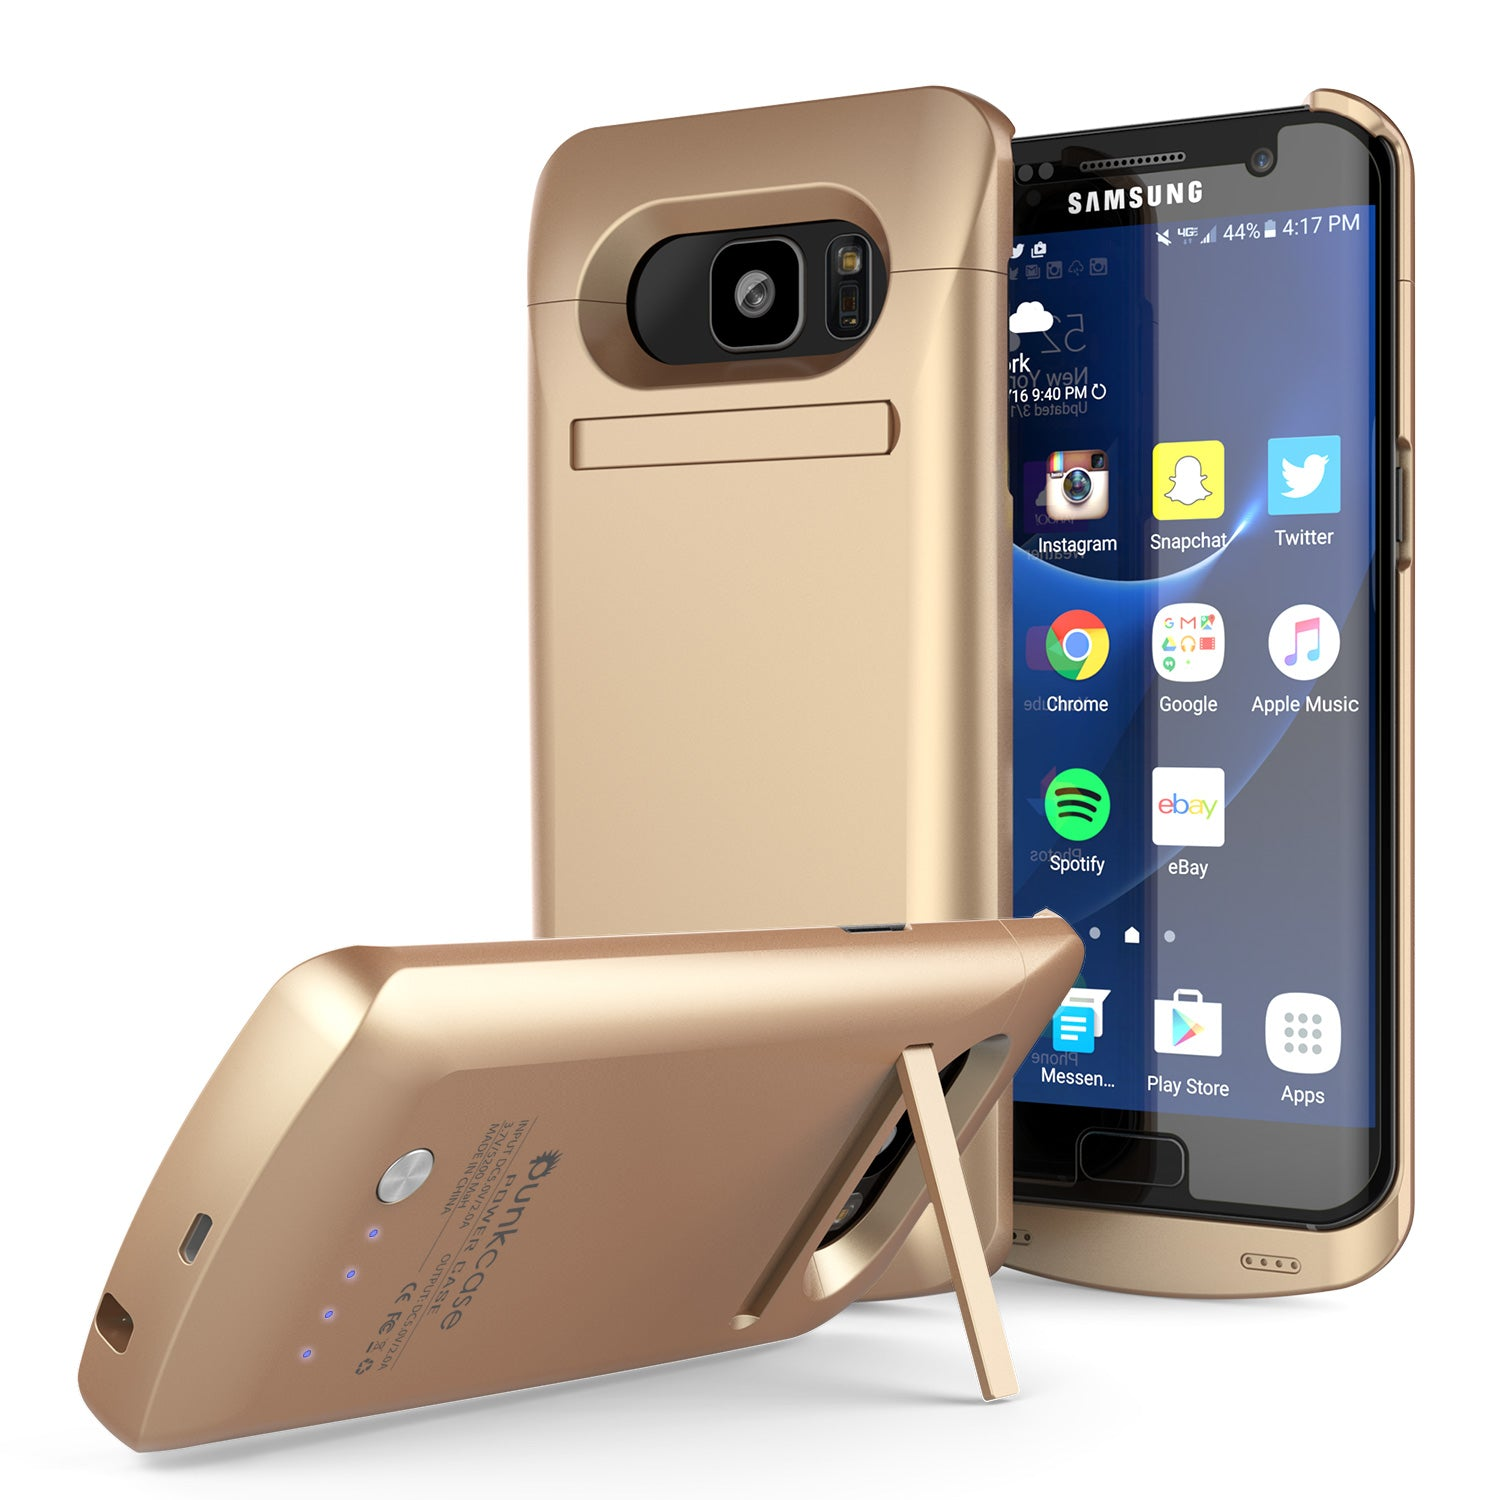 new arrivals 8558c 18dac Galaxy S7 EDGE Battery Case, Punkcase 5200mAH Charger Case W/ Screen  Protector | Integrated Kickstand & USB Port | IntelSwitch [Gold]